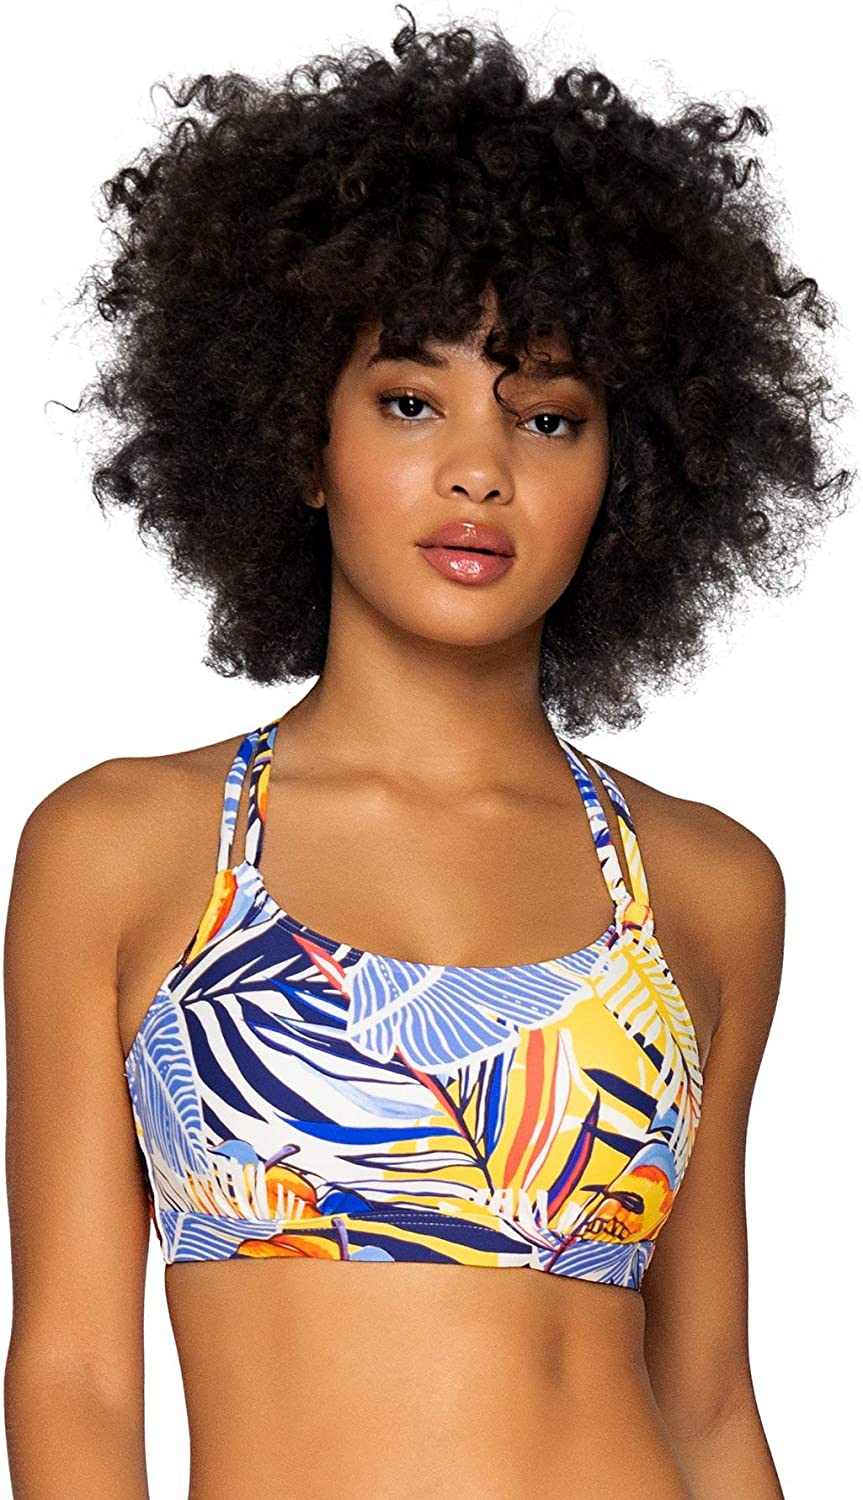 Sunsets All stores are sold Women's Standard Taylor Max 45% OFF Bralette Bikini Swimsuit wit Top